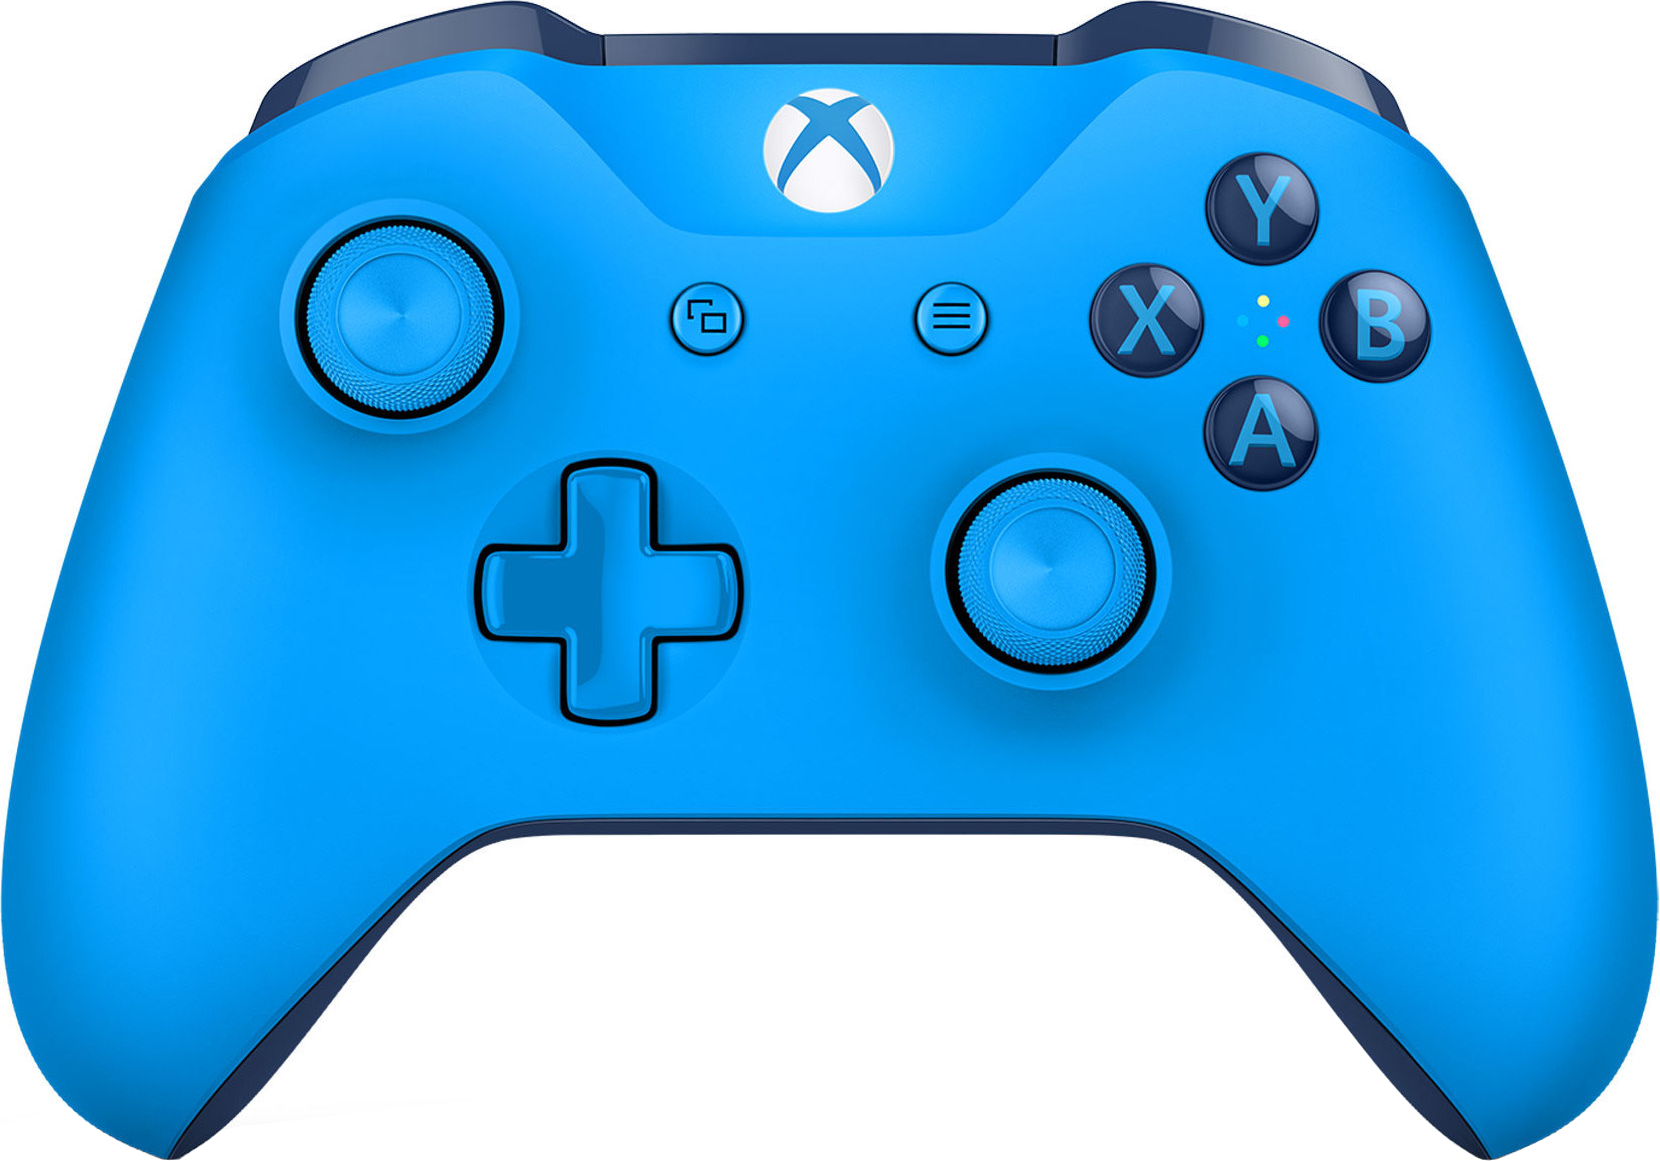 Xbox Wireless Controller v3 (Blue)